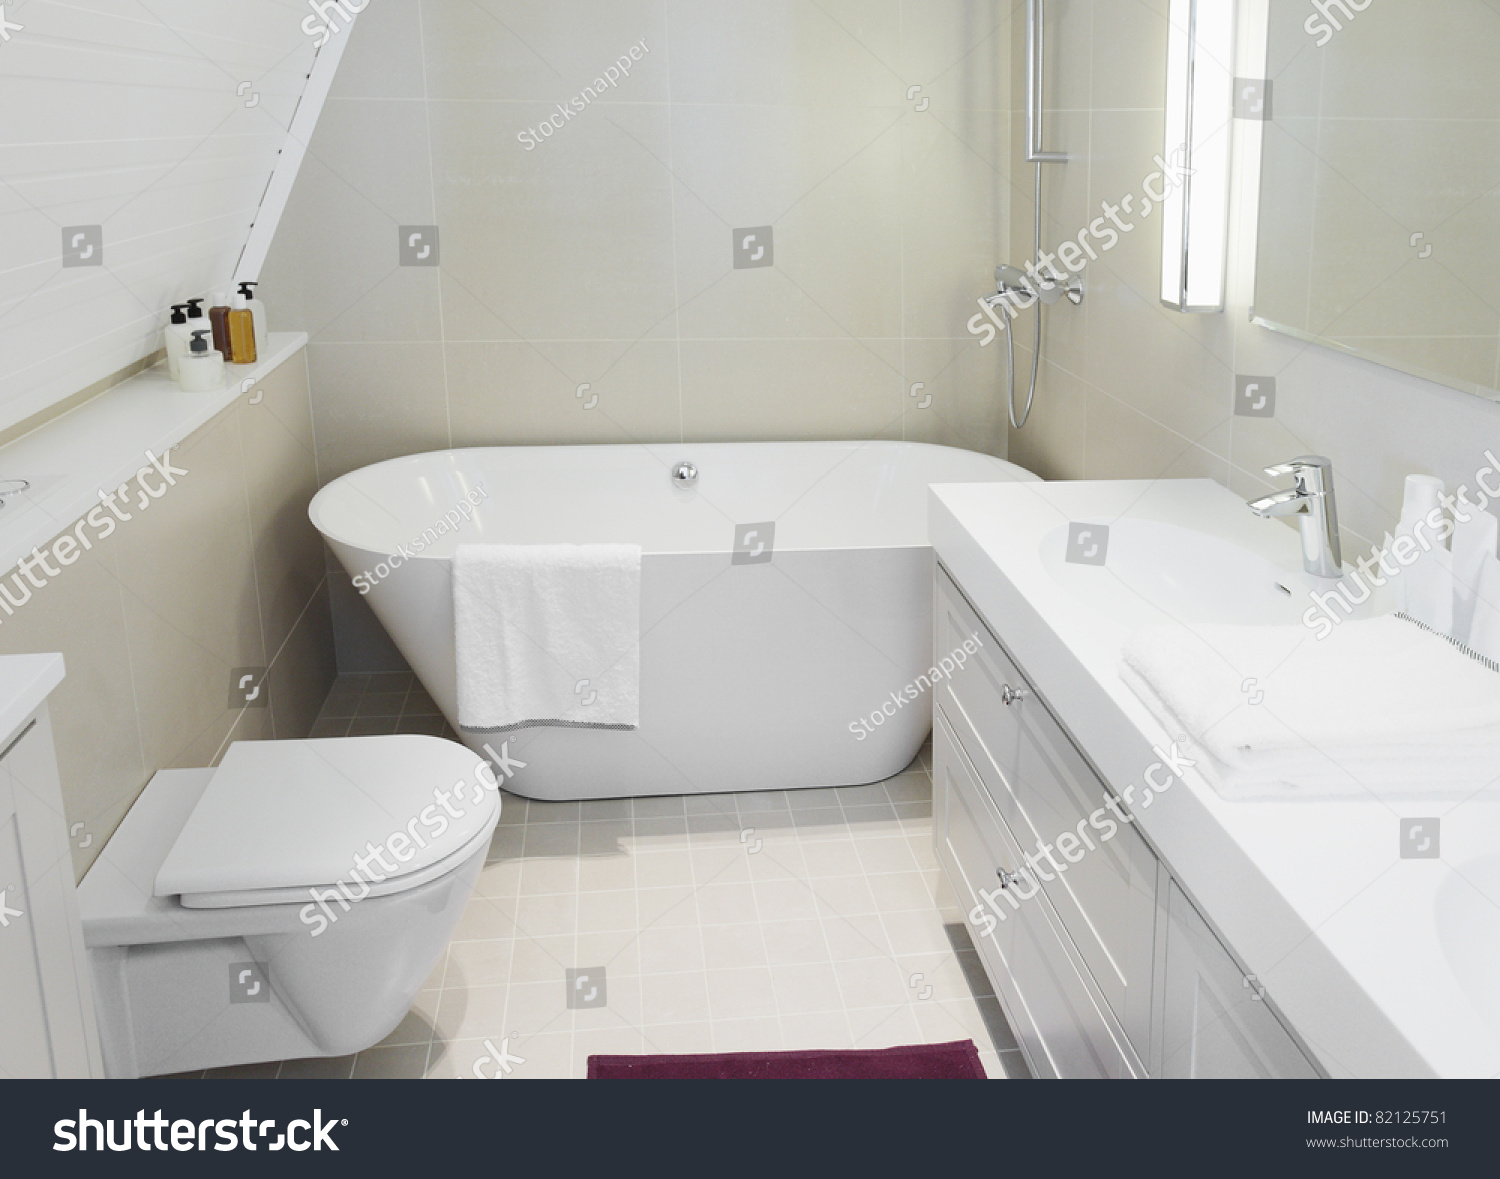 Modern new small bathroom interior bath stock photo for New small bathroom